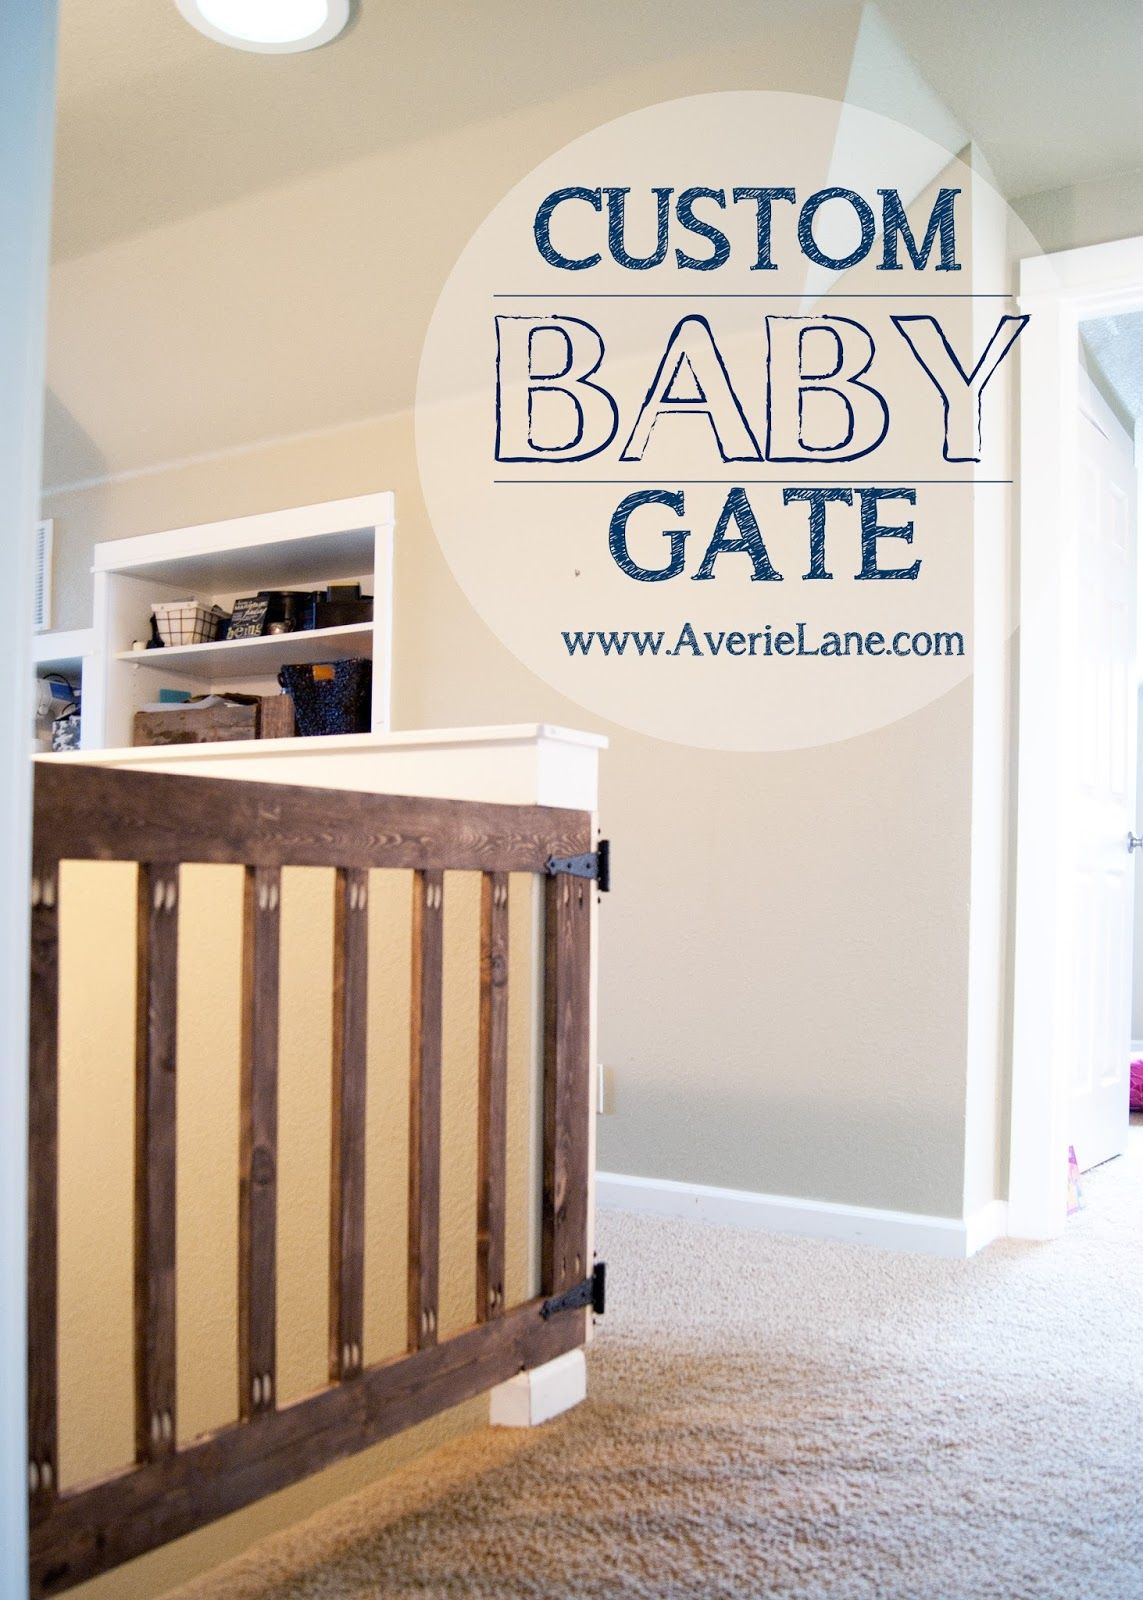 Cute Wooden Baby Gym To Diy Children Baby Kinderzimmer Baby Custom Baby Gate Pictures Photos And Images For Facebook